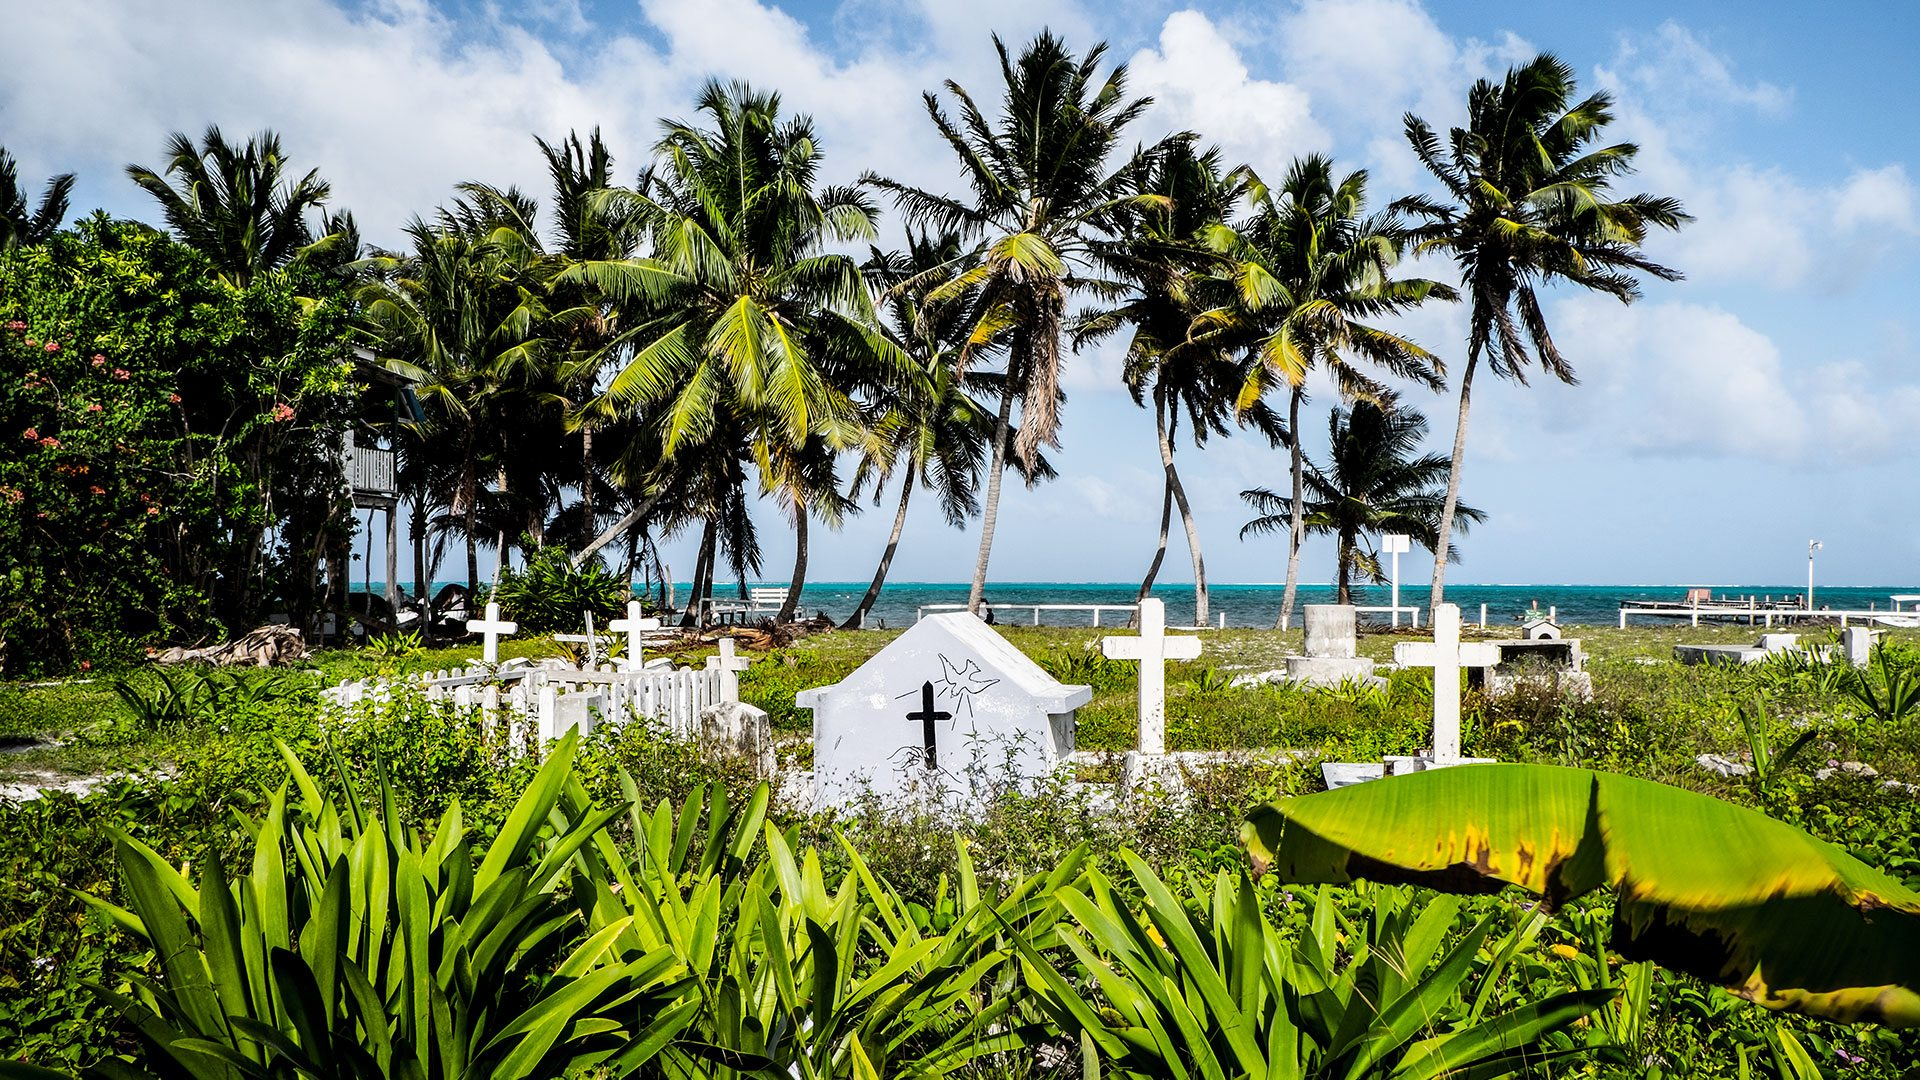 Tropical Cemetery, Caye Caulker Island, Belize